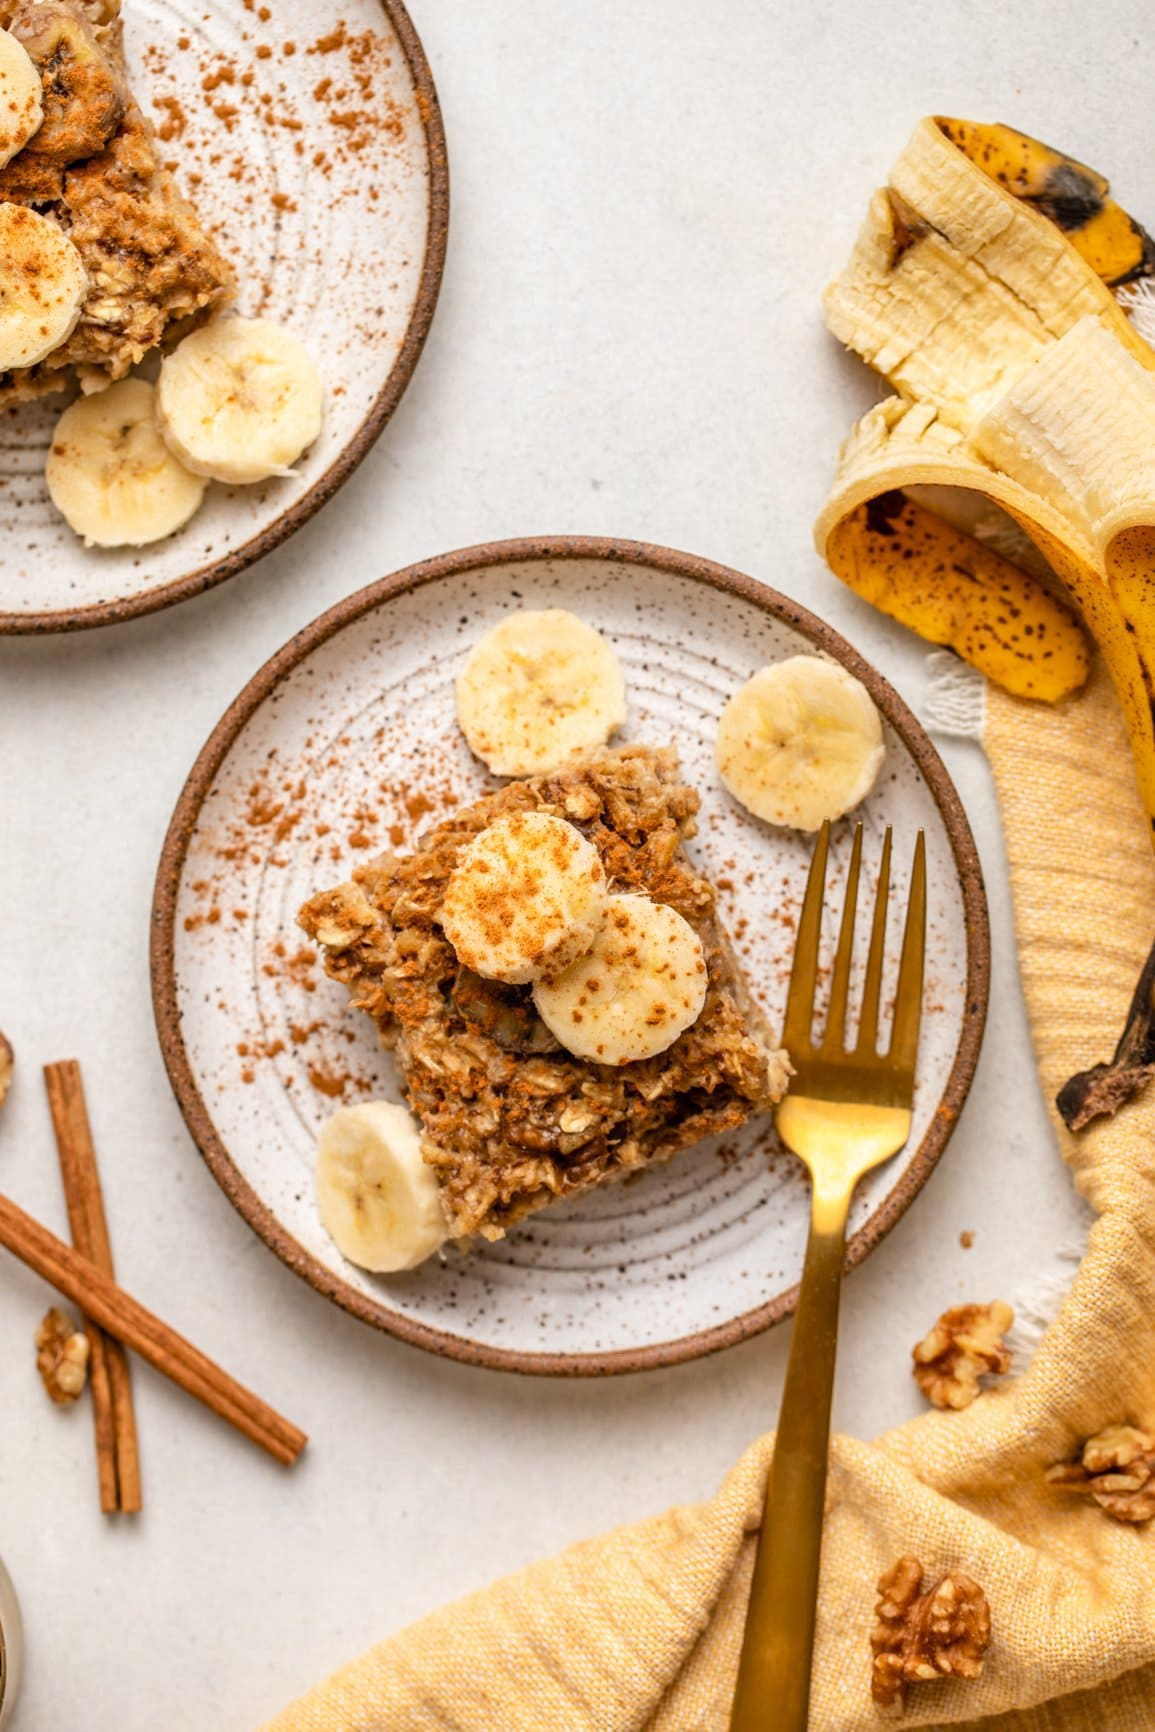 slice of baked banana bread oatmeal on small white plate topped with sliced banana and cinnamon